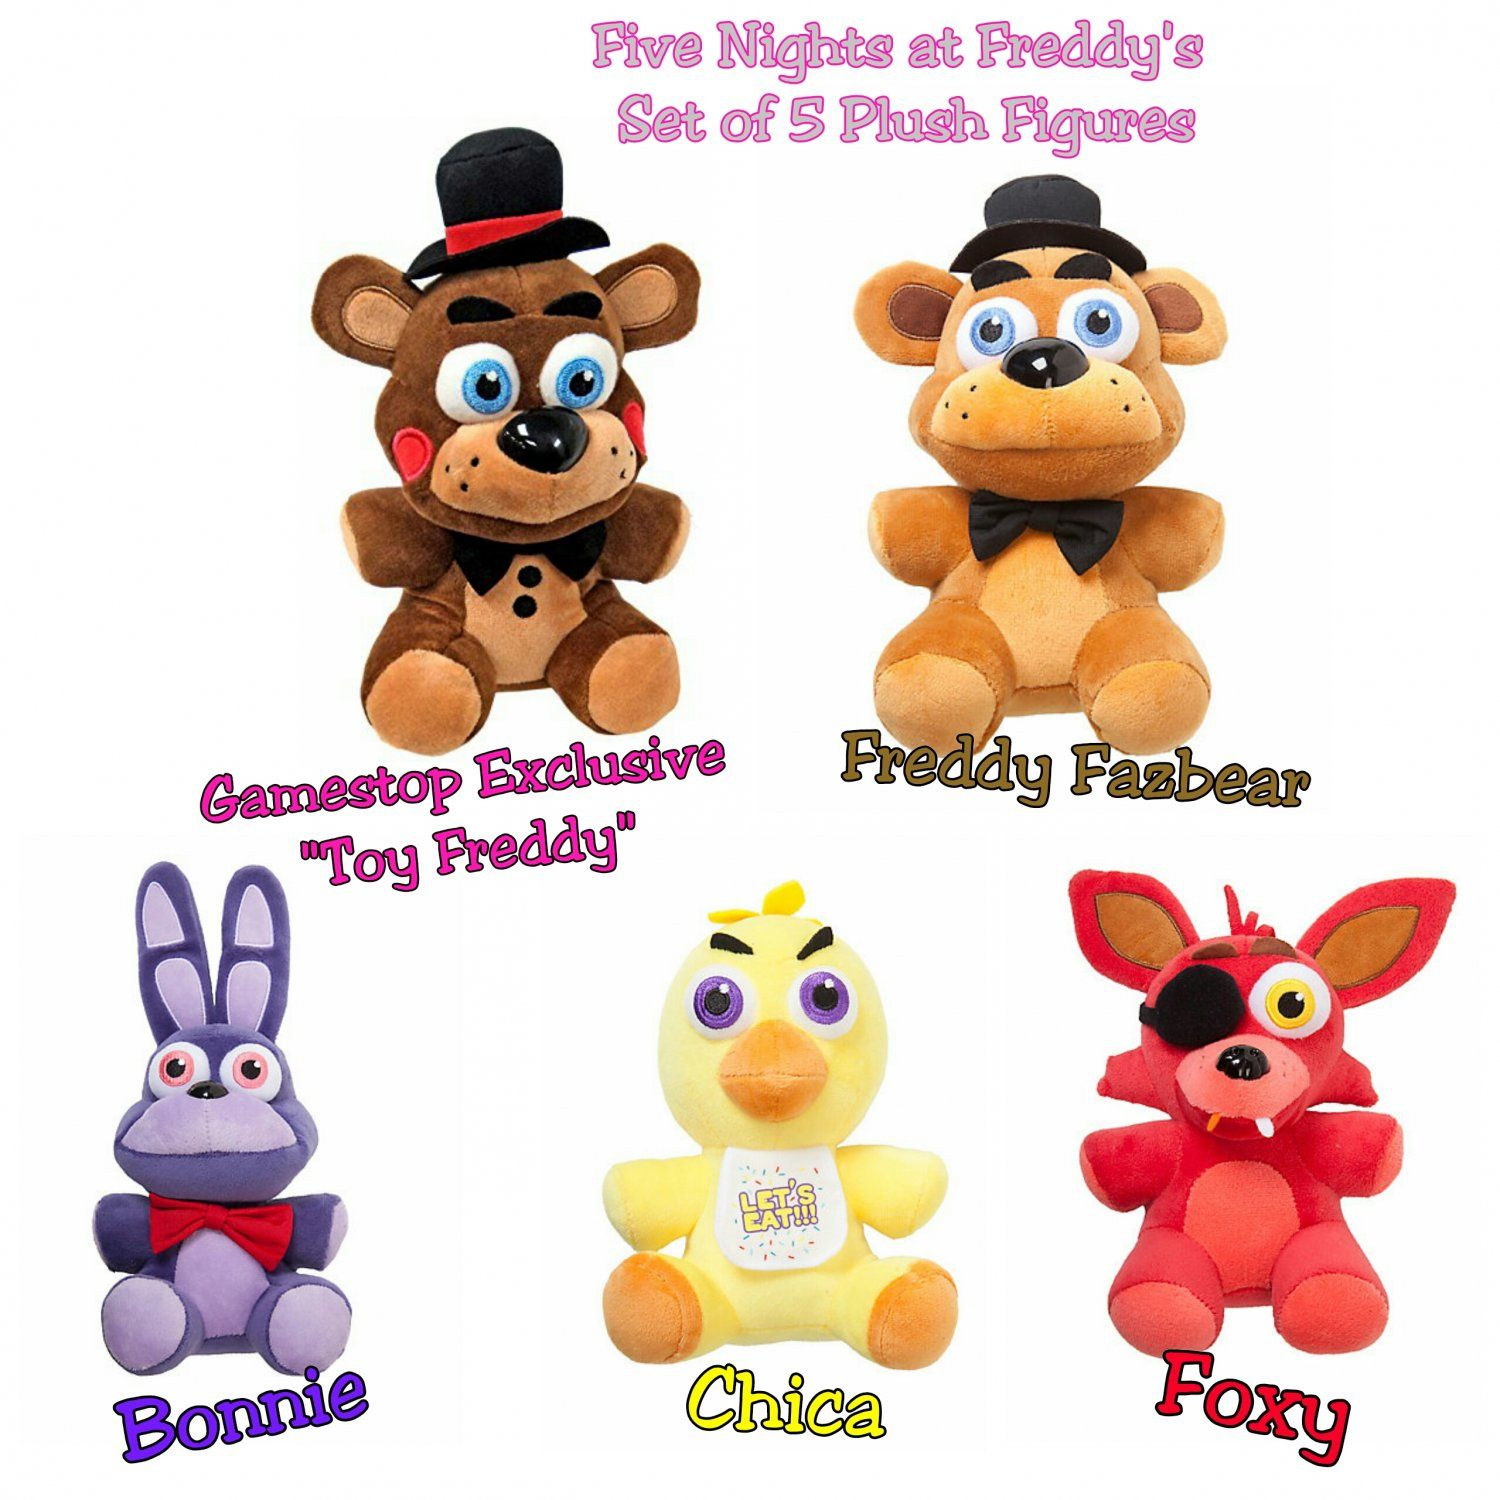 Five Nights At Freddy's FNAF Set of 5 Collectible 6